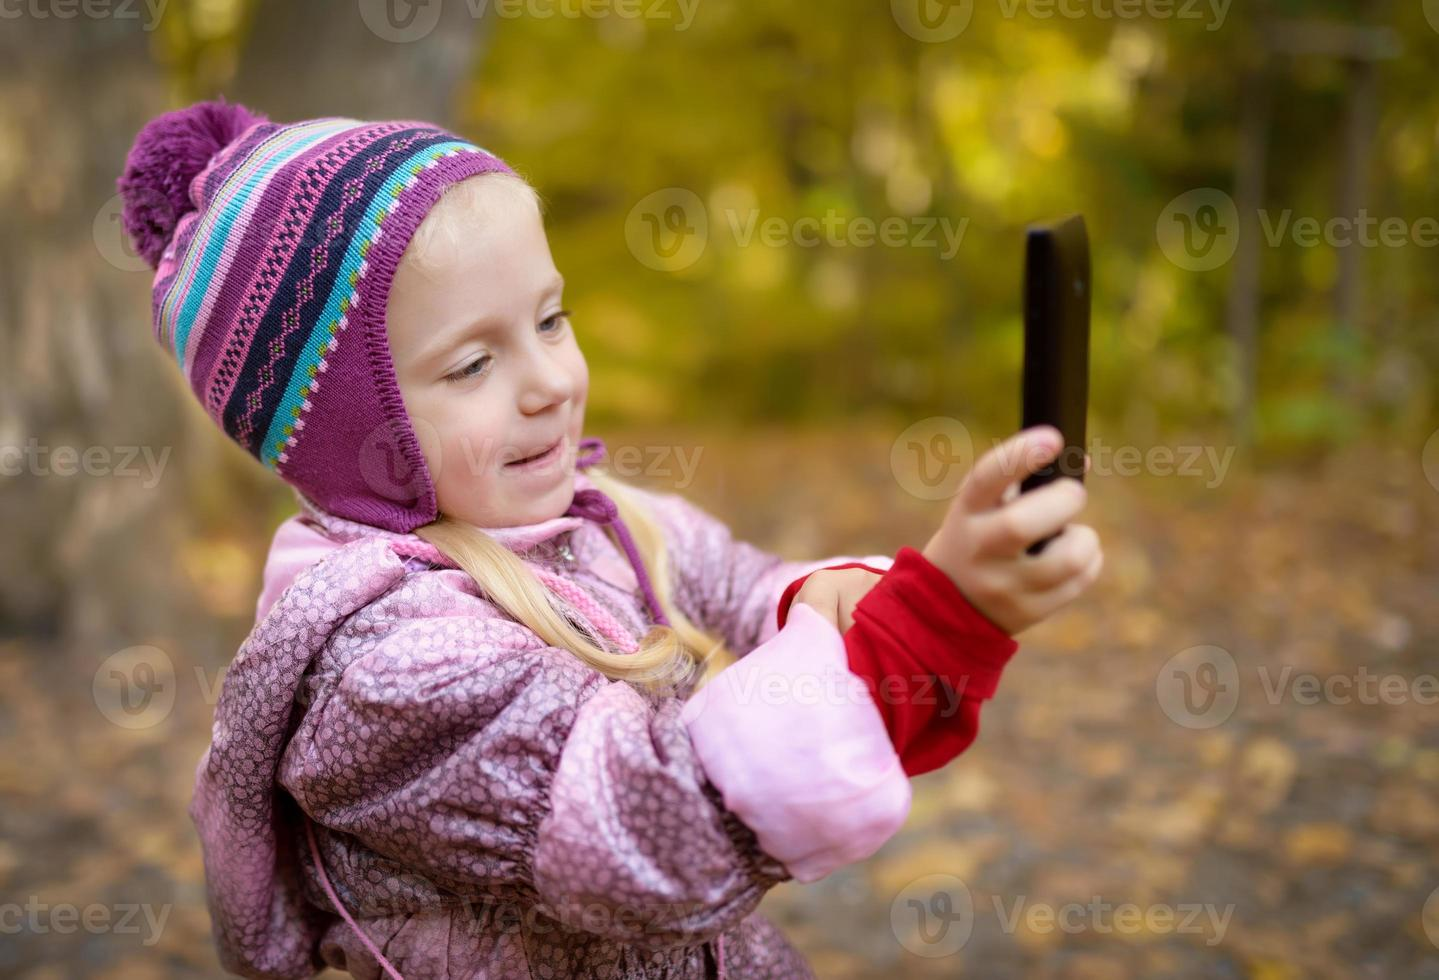 Little girl making photo with smartphone.